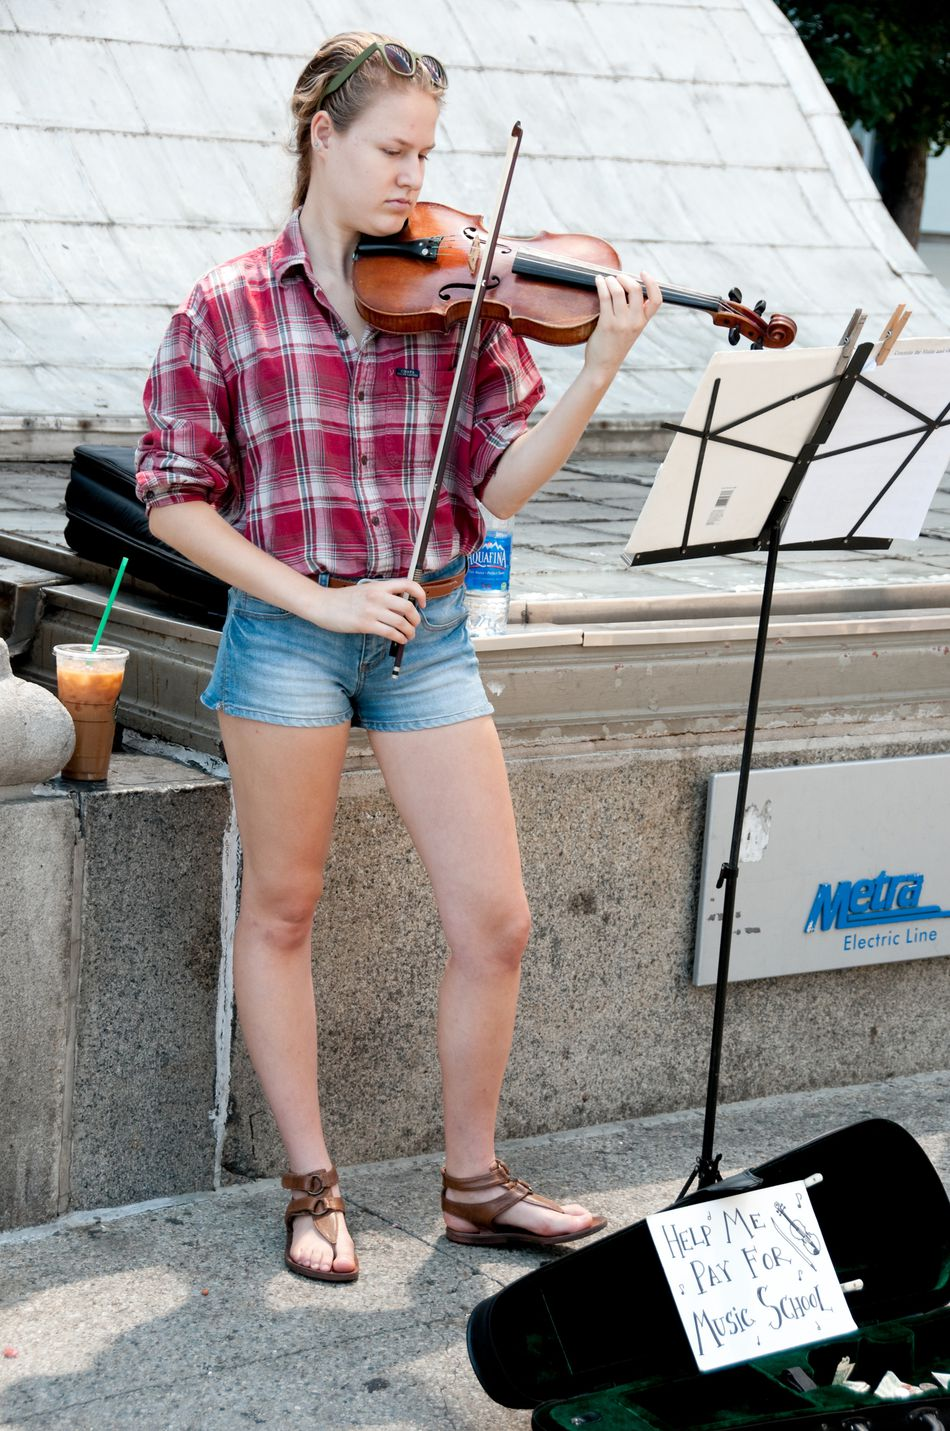 A woman busking with a violin